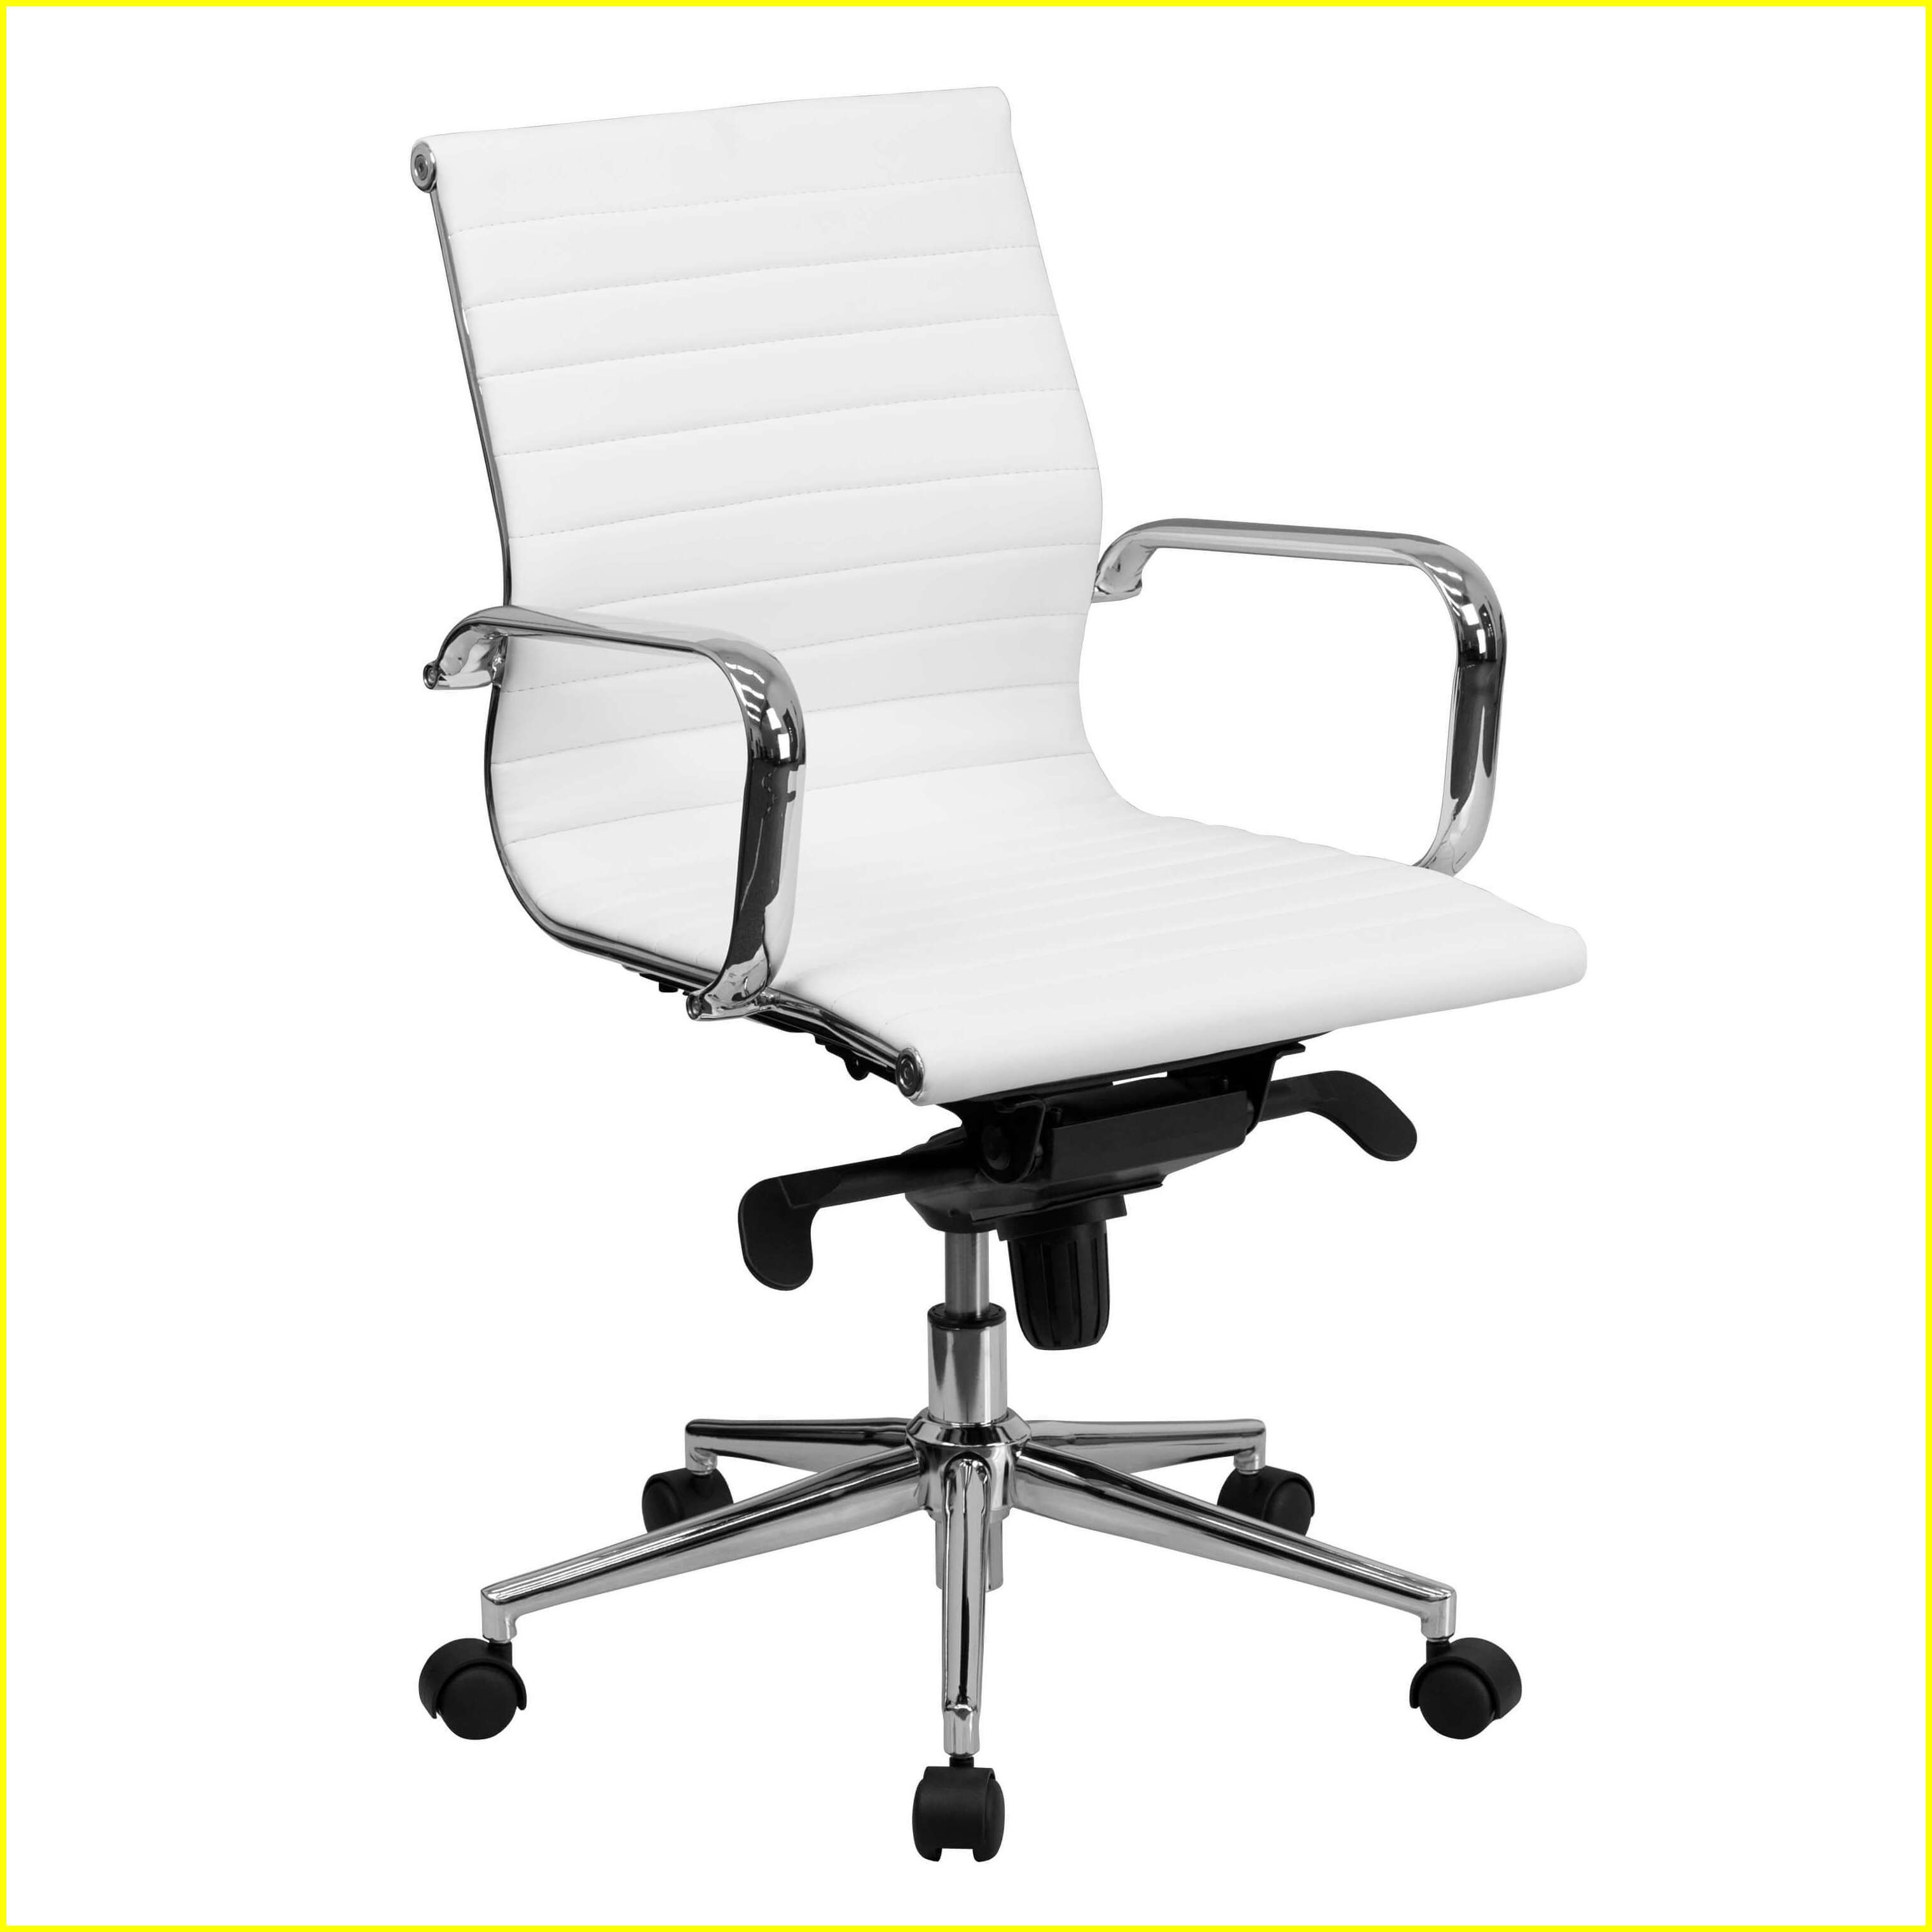 50 Reference Of Cool Desk Chair No Wheels In 2020 Leather Office Chair White Office Chair Conference Chairs